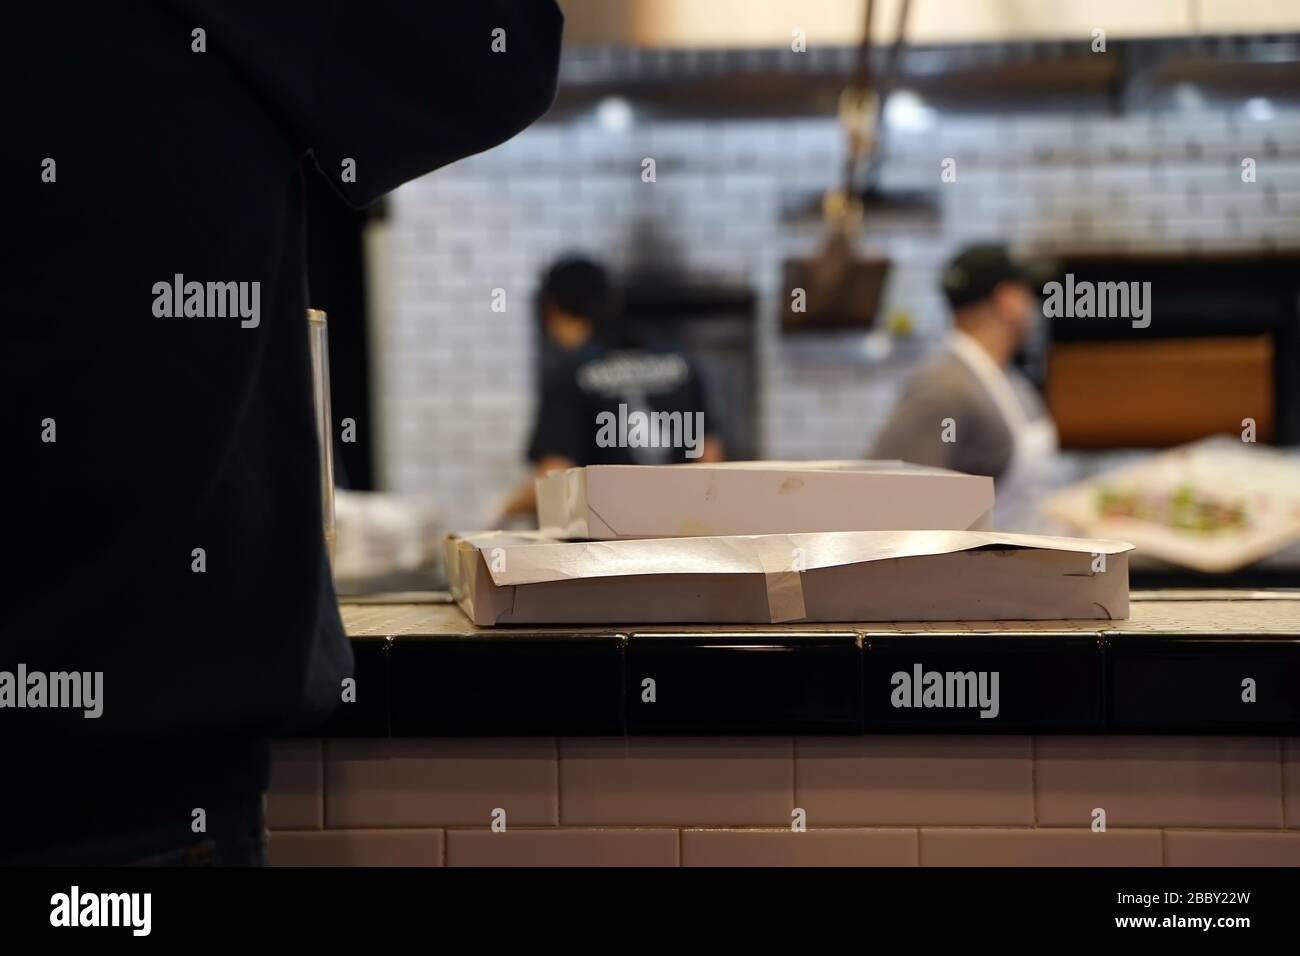 Manchester, CT / USA - March 12, 2020: Two pizza boxes wait on the counter for pickup and delivery Stock Photo